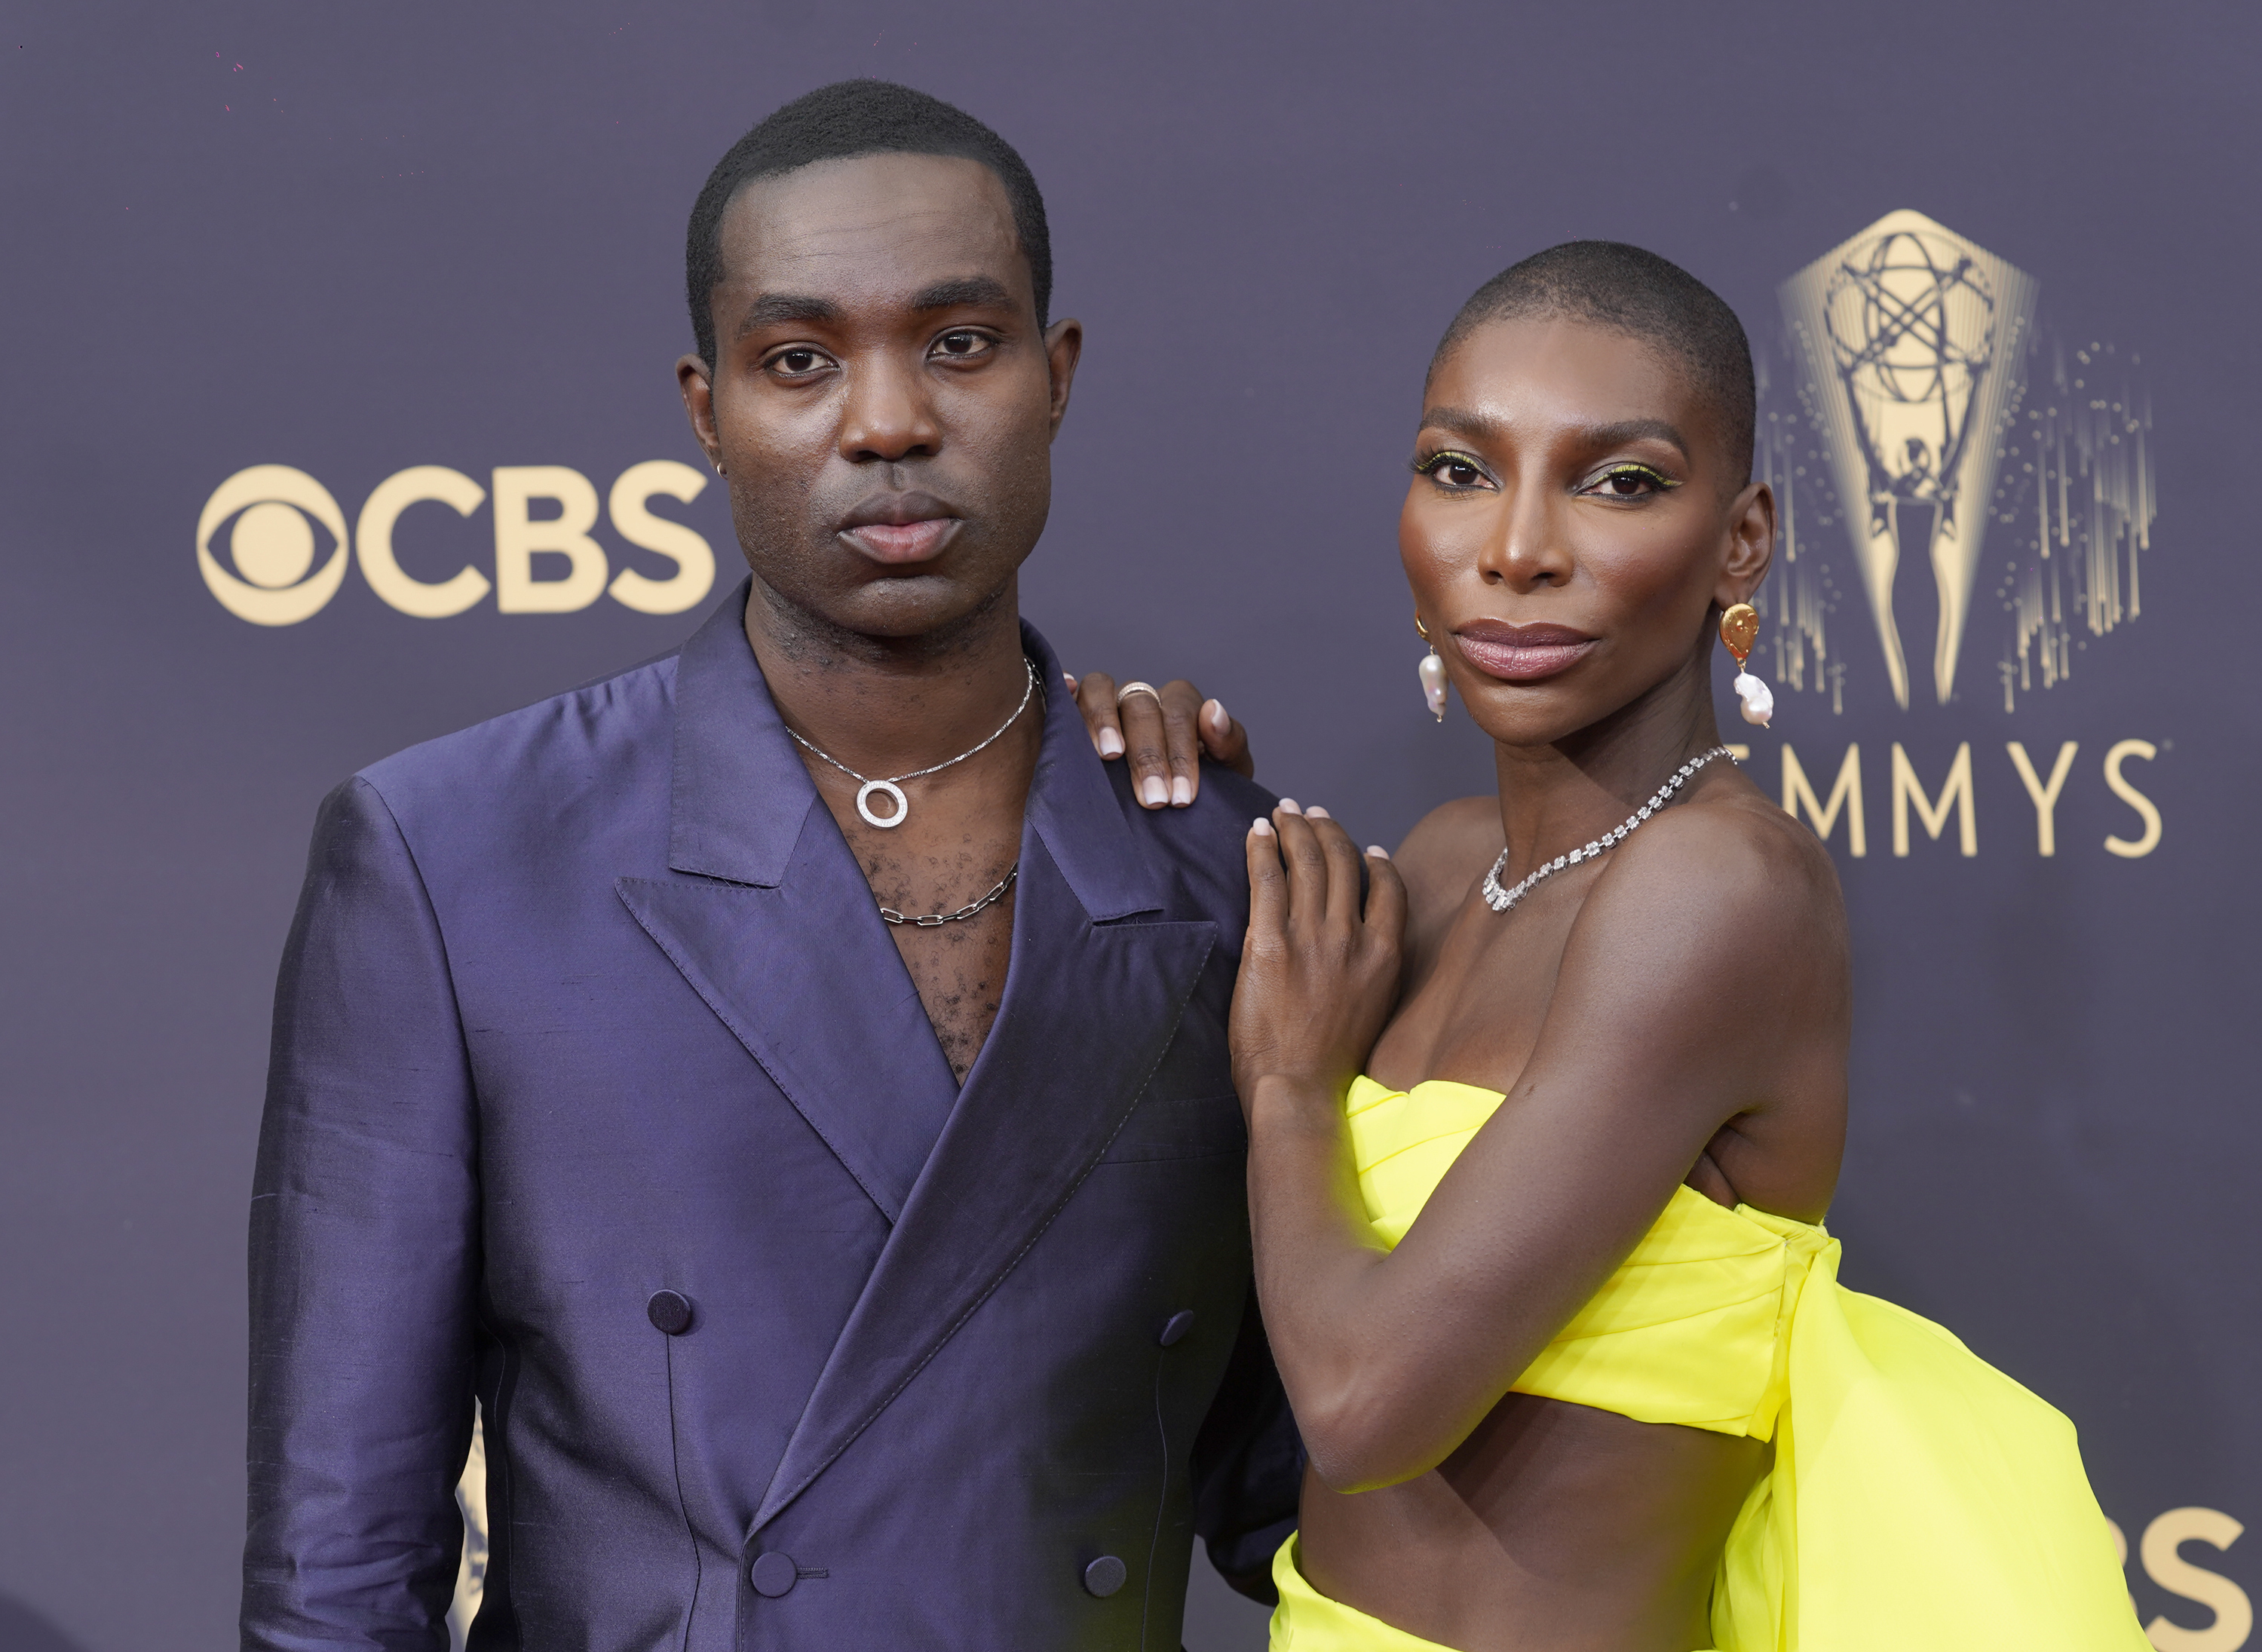 Paapa Essiedu, left, and Michaela Coel at the Emmys